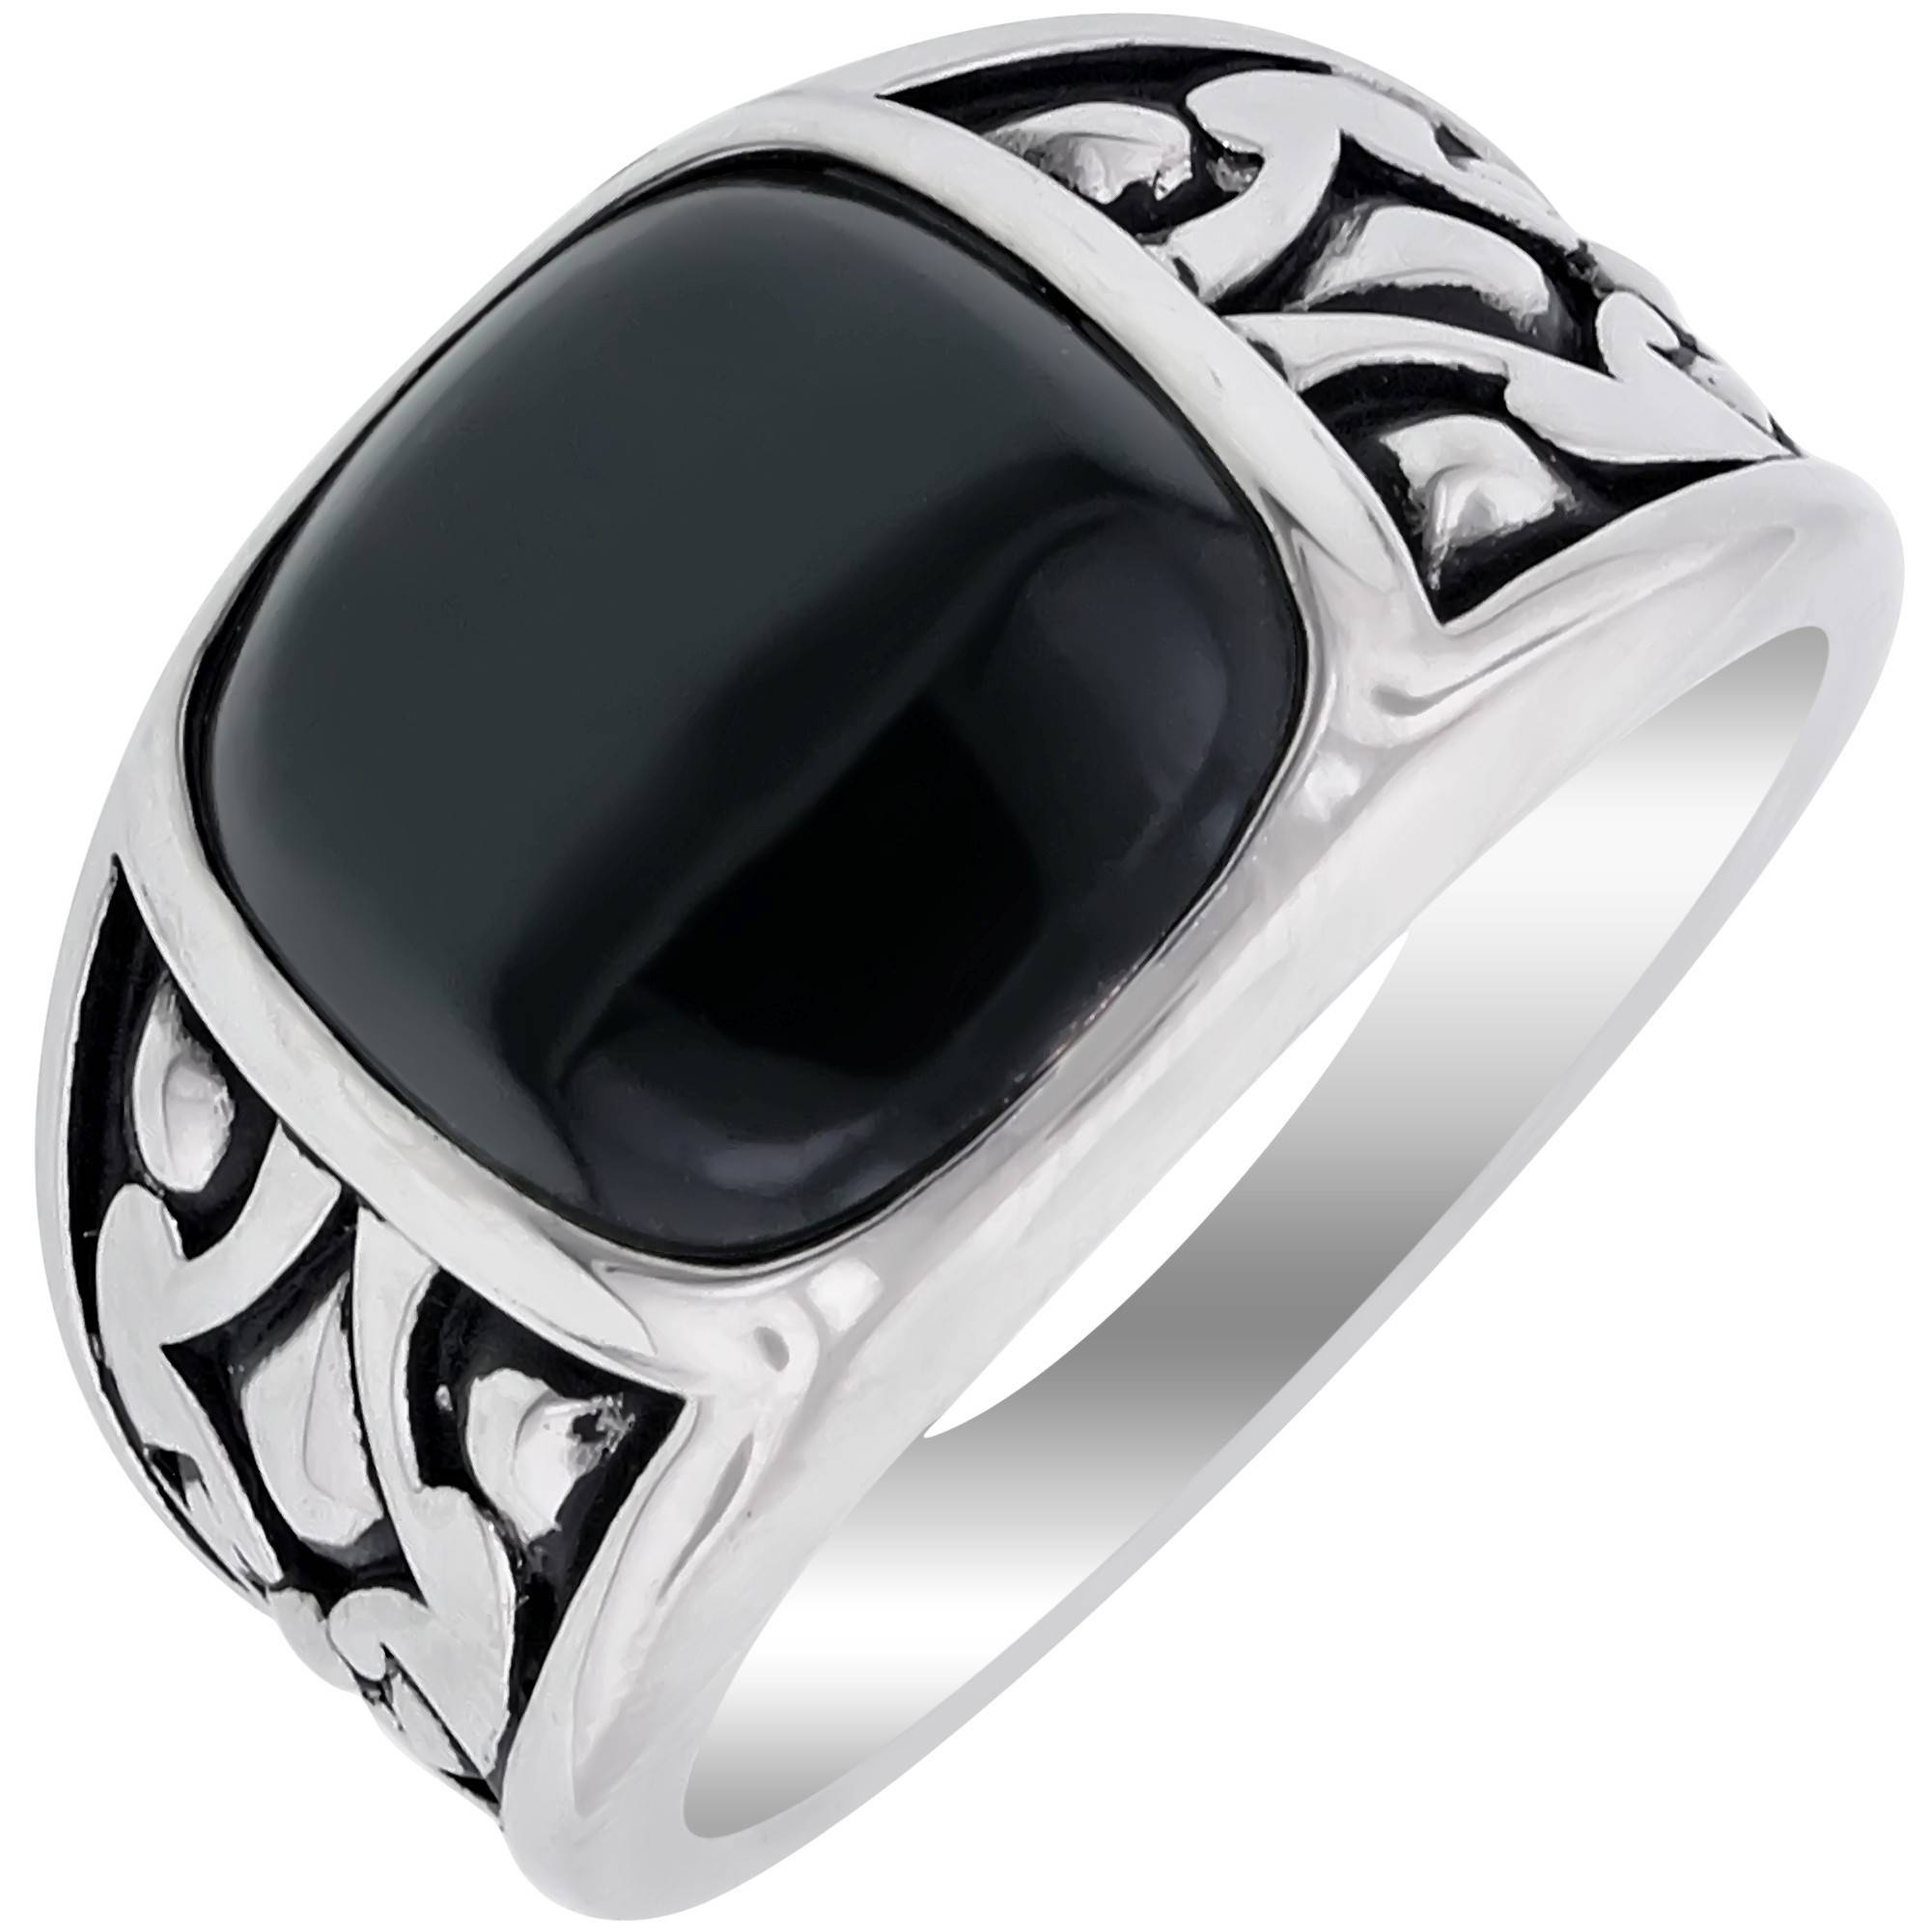 love fm africa rings we encordia pave solitaire glamour wedding south engagement onyx